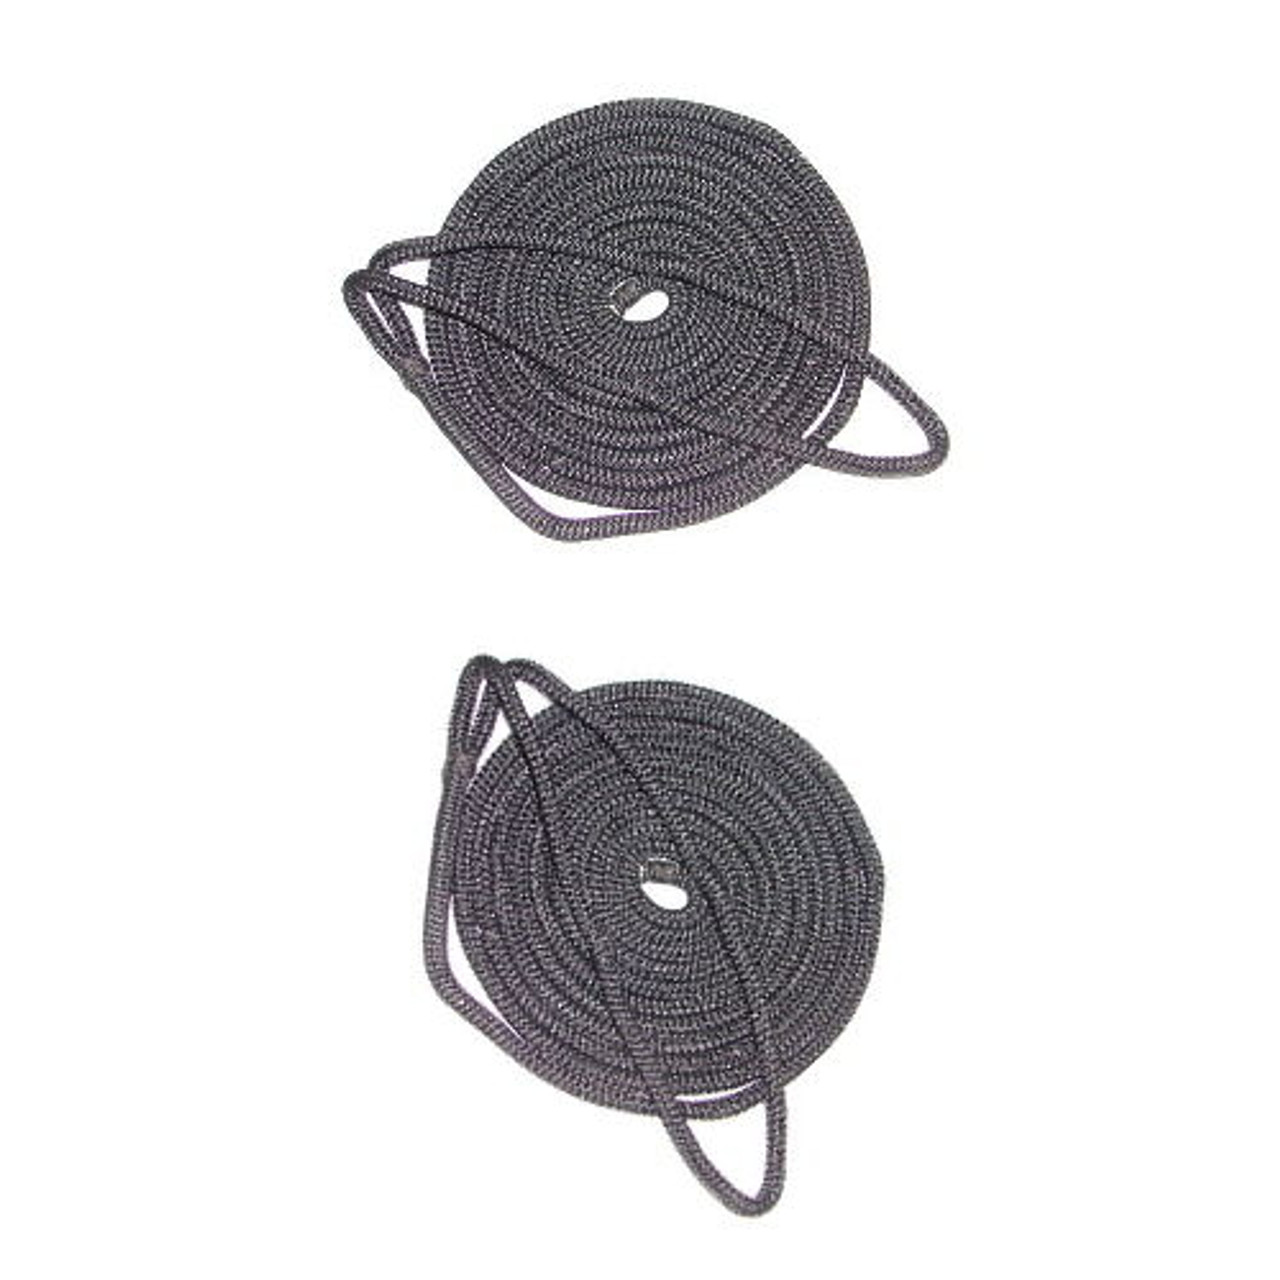 2 Pack of 3/8 Inch x 6 Ft Double Braid Nylon Fender Lines for Boats - Multiple Colors Available